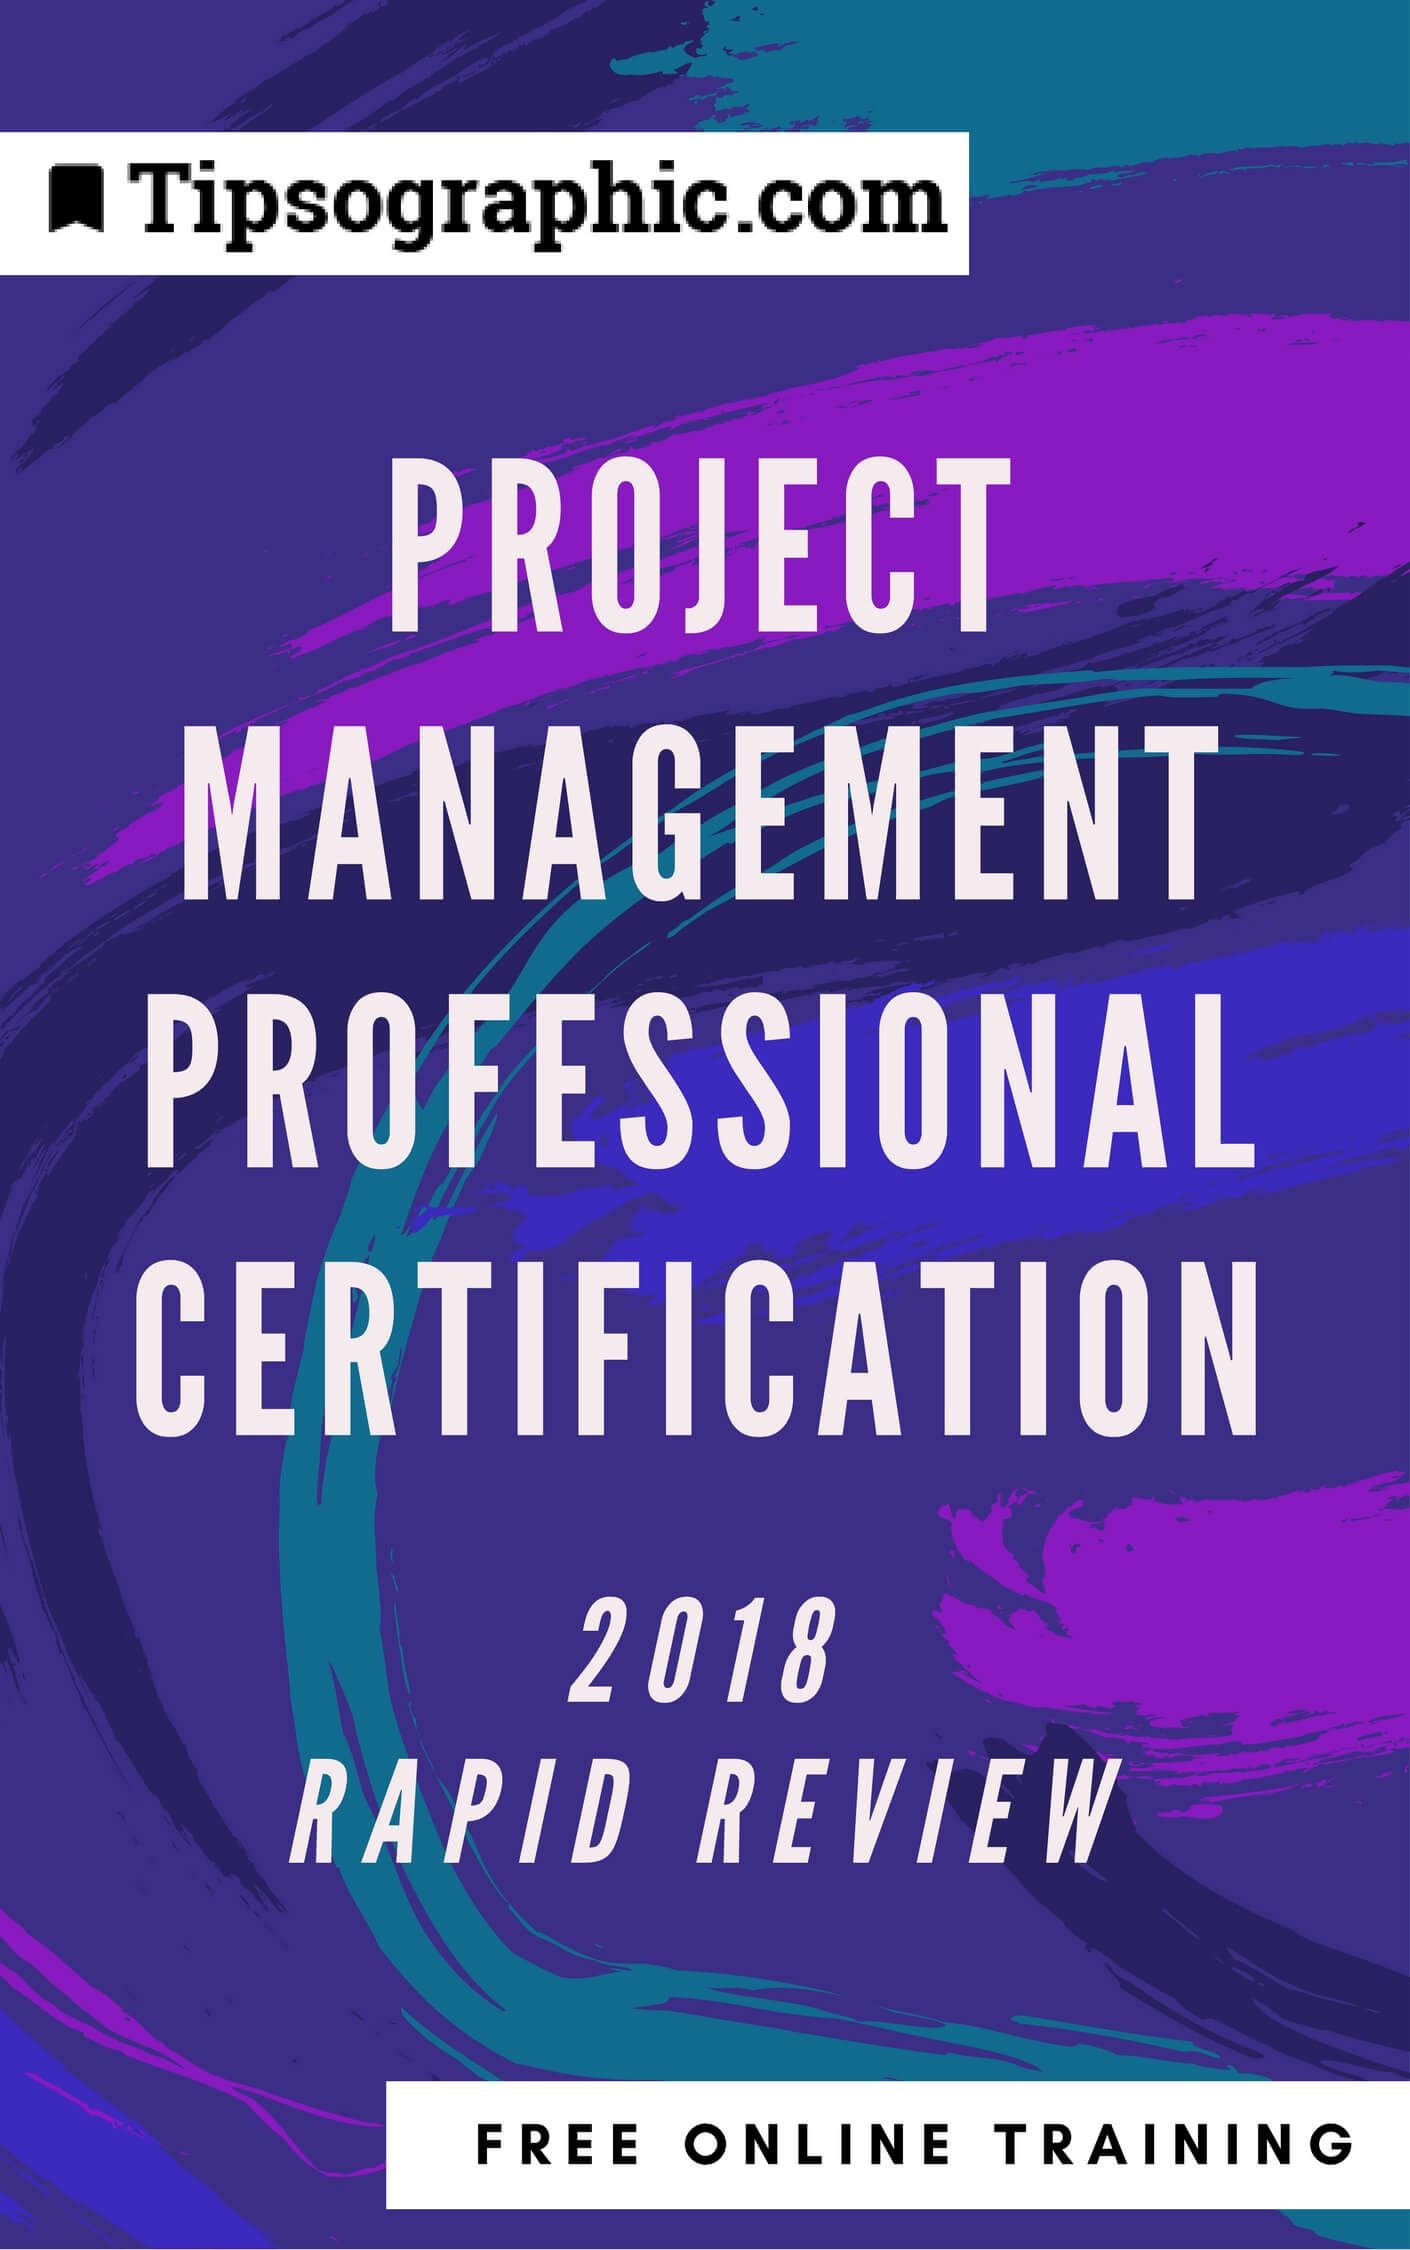 project management professional certification 2018 rapid review free online training tipsographic